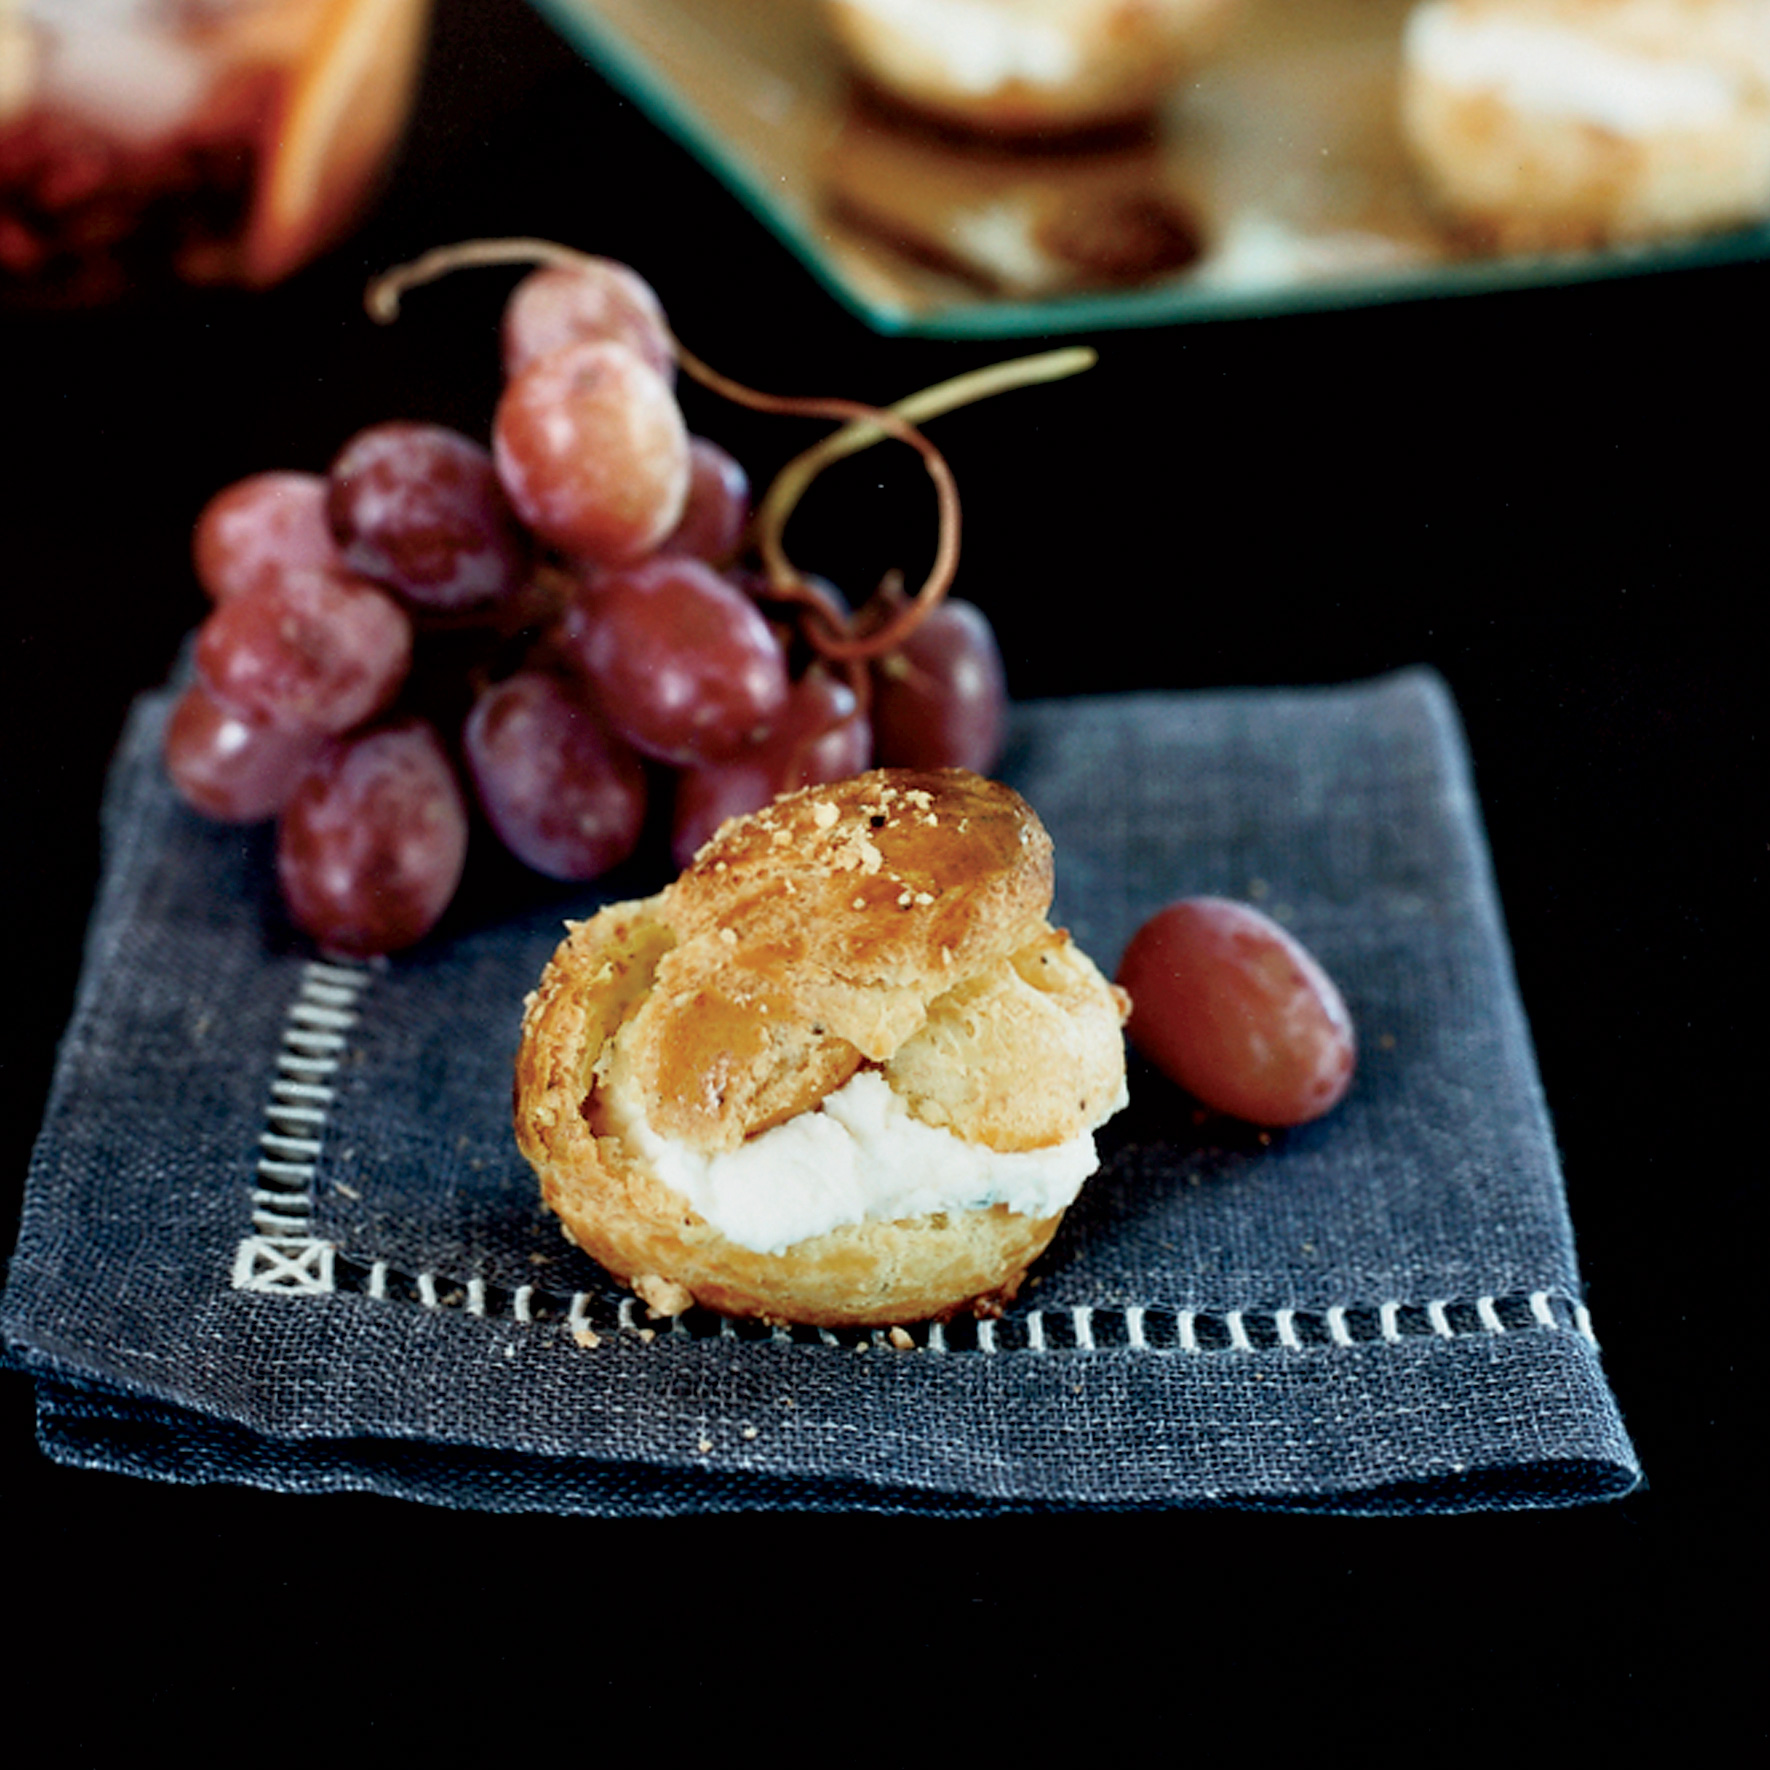 Hazelnut Profiteroles with Blue Cheese and Grapes